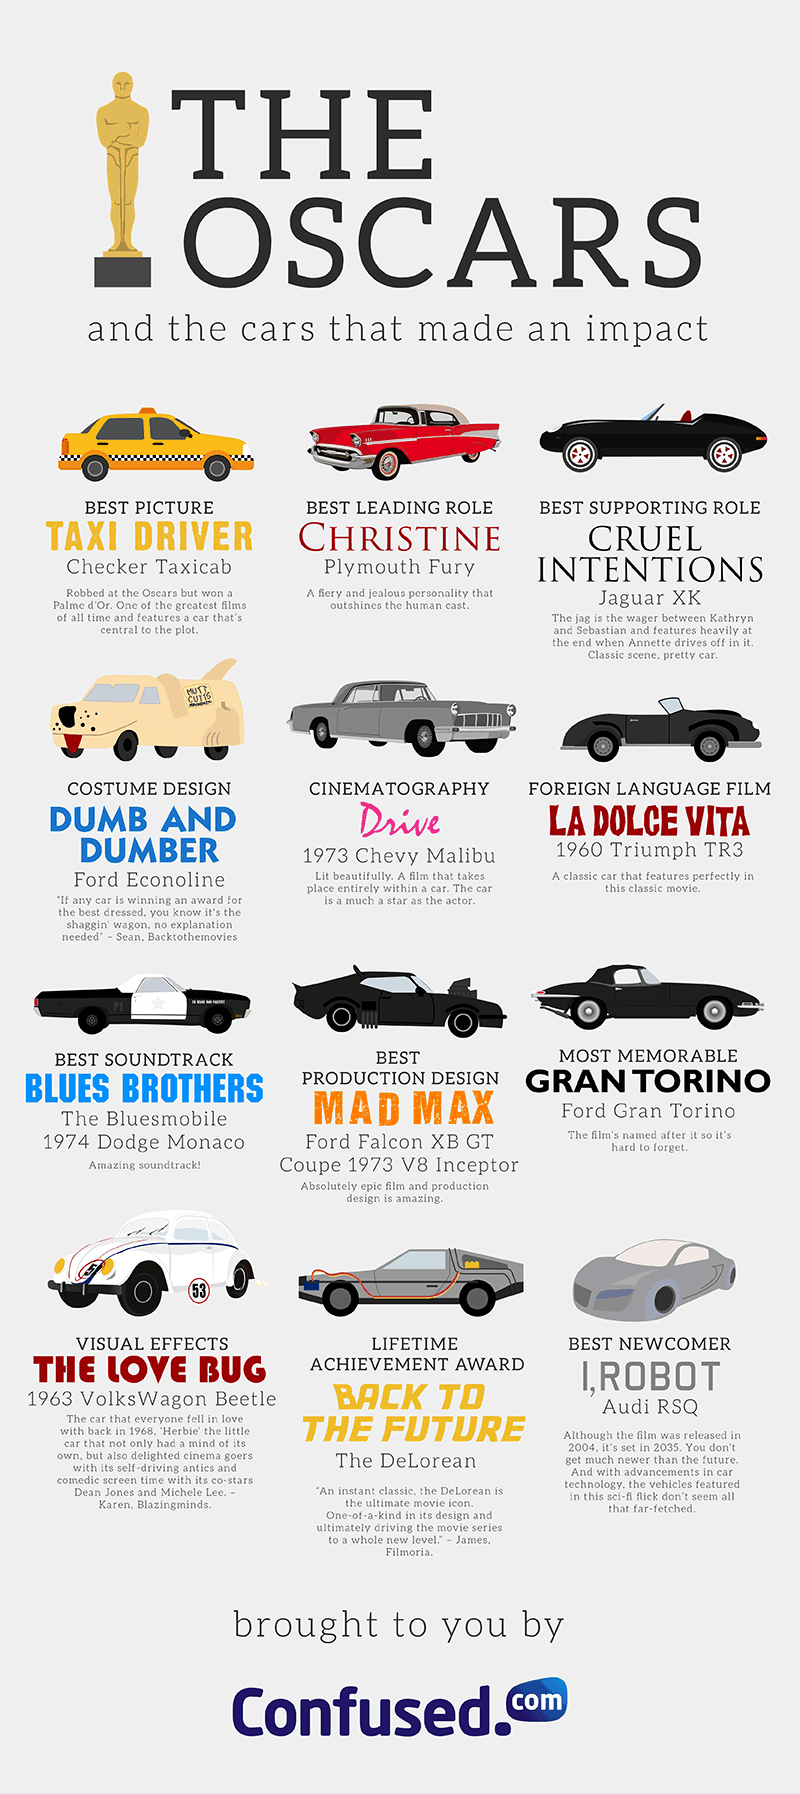 The cars that made an impact at the Oscars